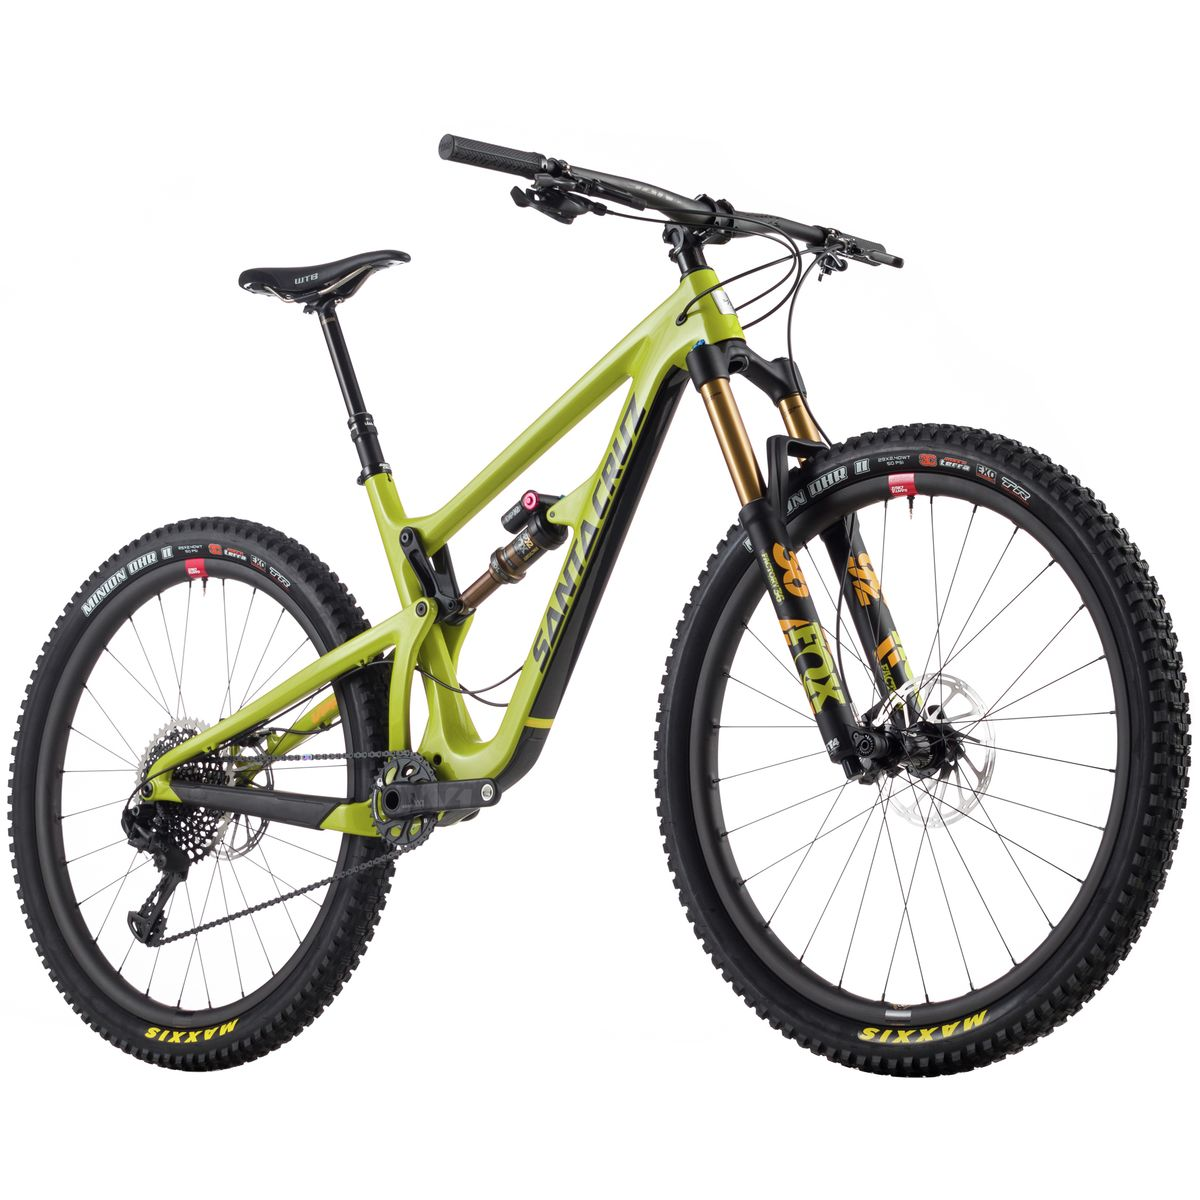 Santa Cruz Bicycles Hightower LT Carbon CC XX1 Eagle Reserve Complete 2018